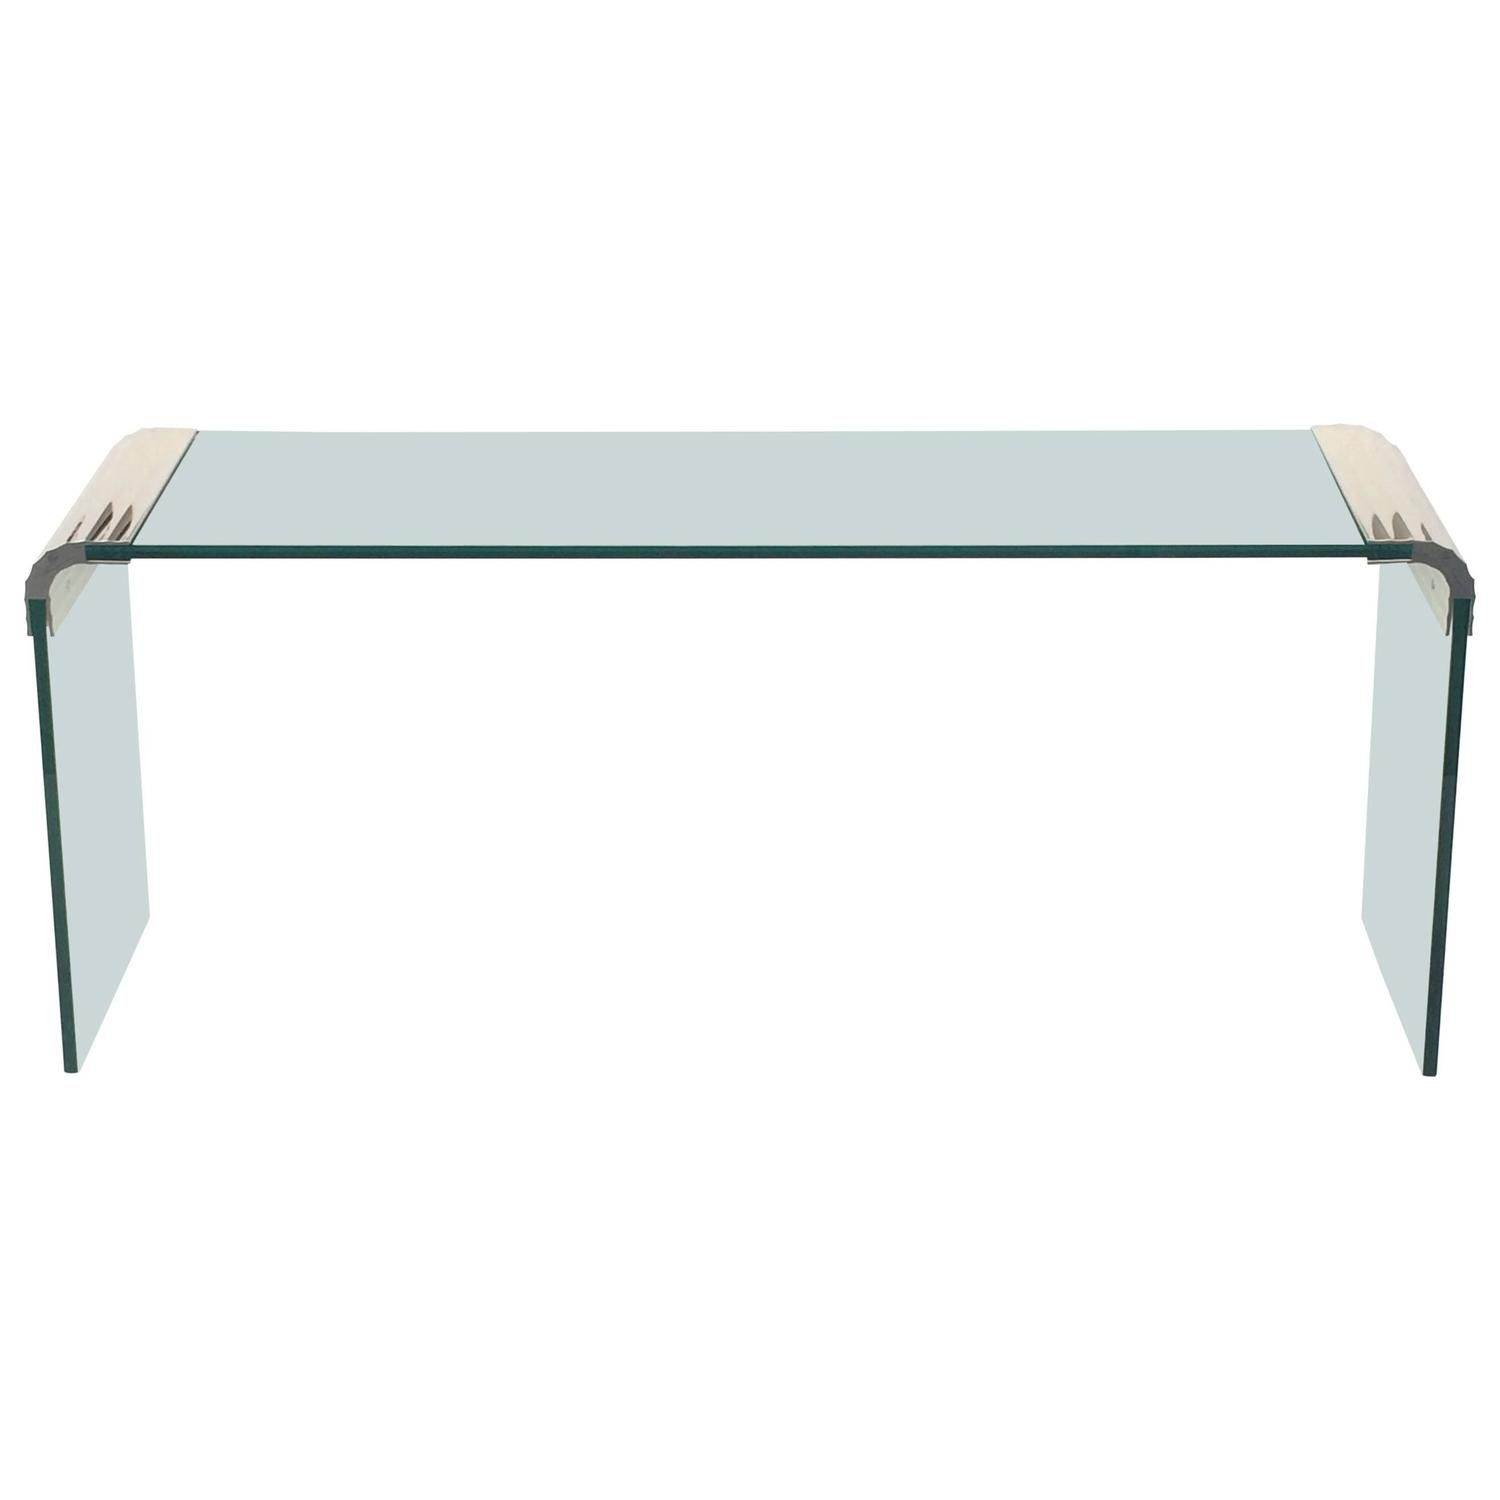 Scalloped nickel and glass console table by leon rosen for - Console table a manger ...